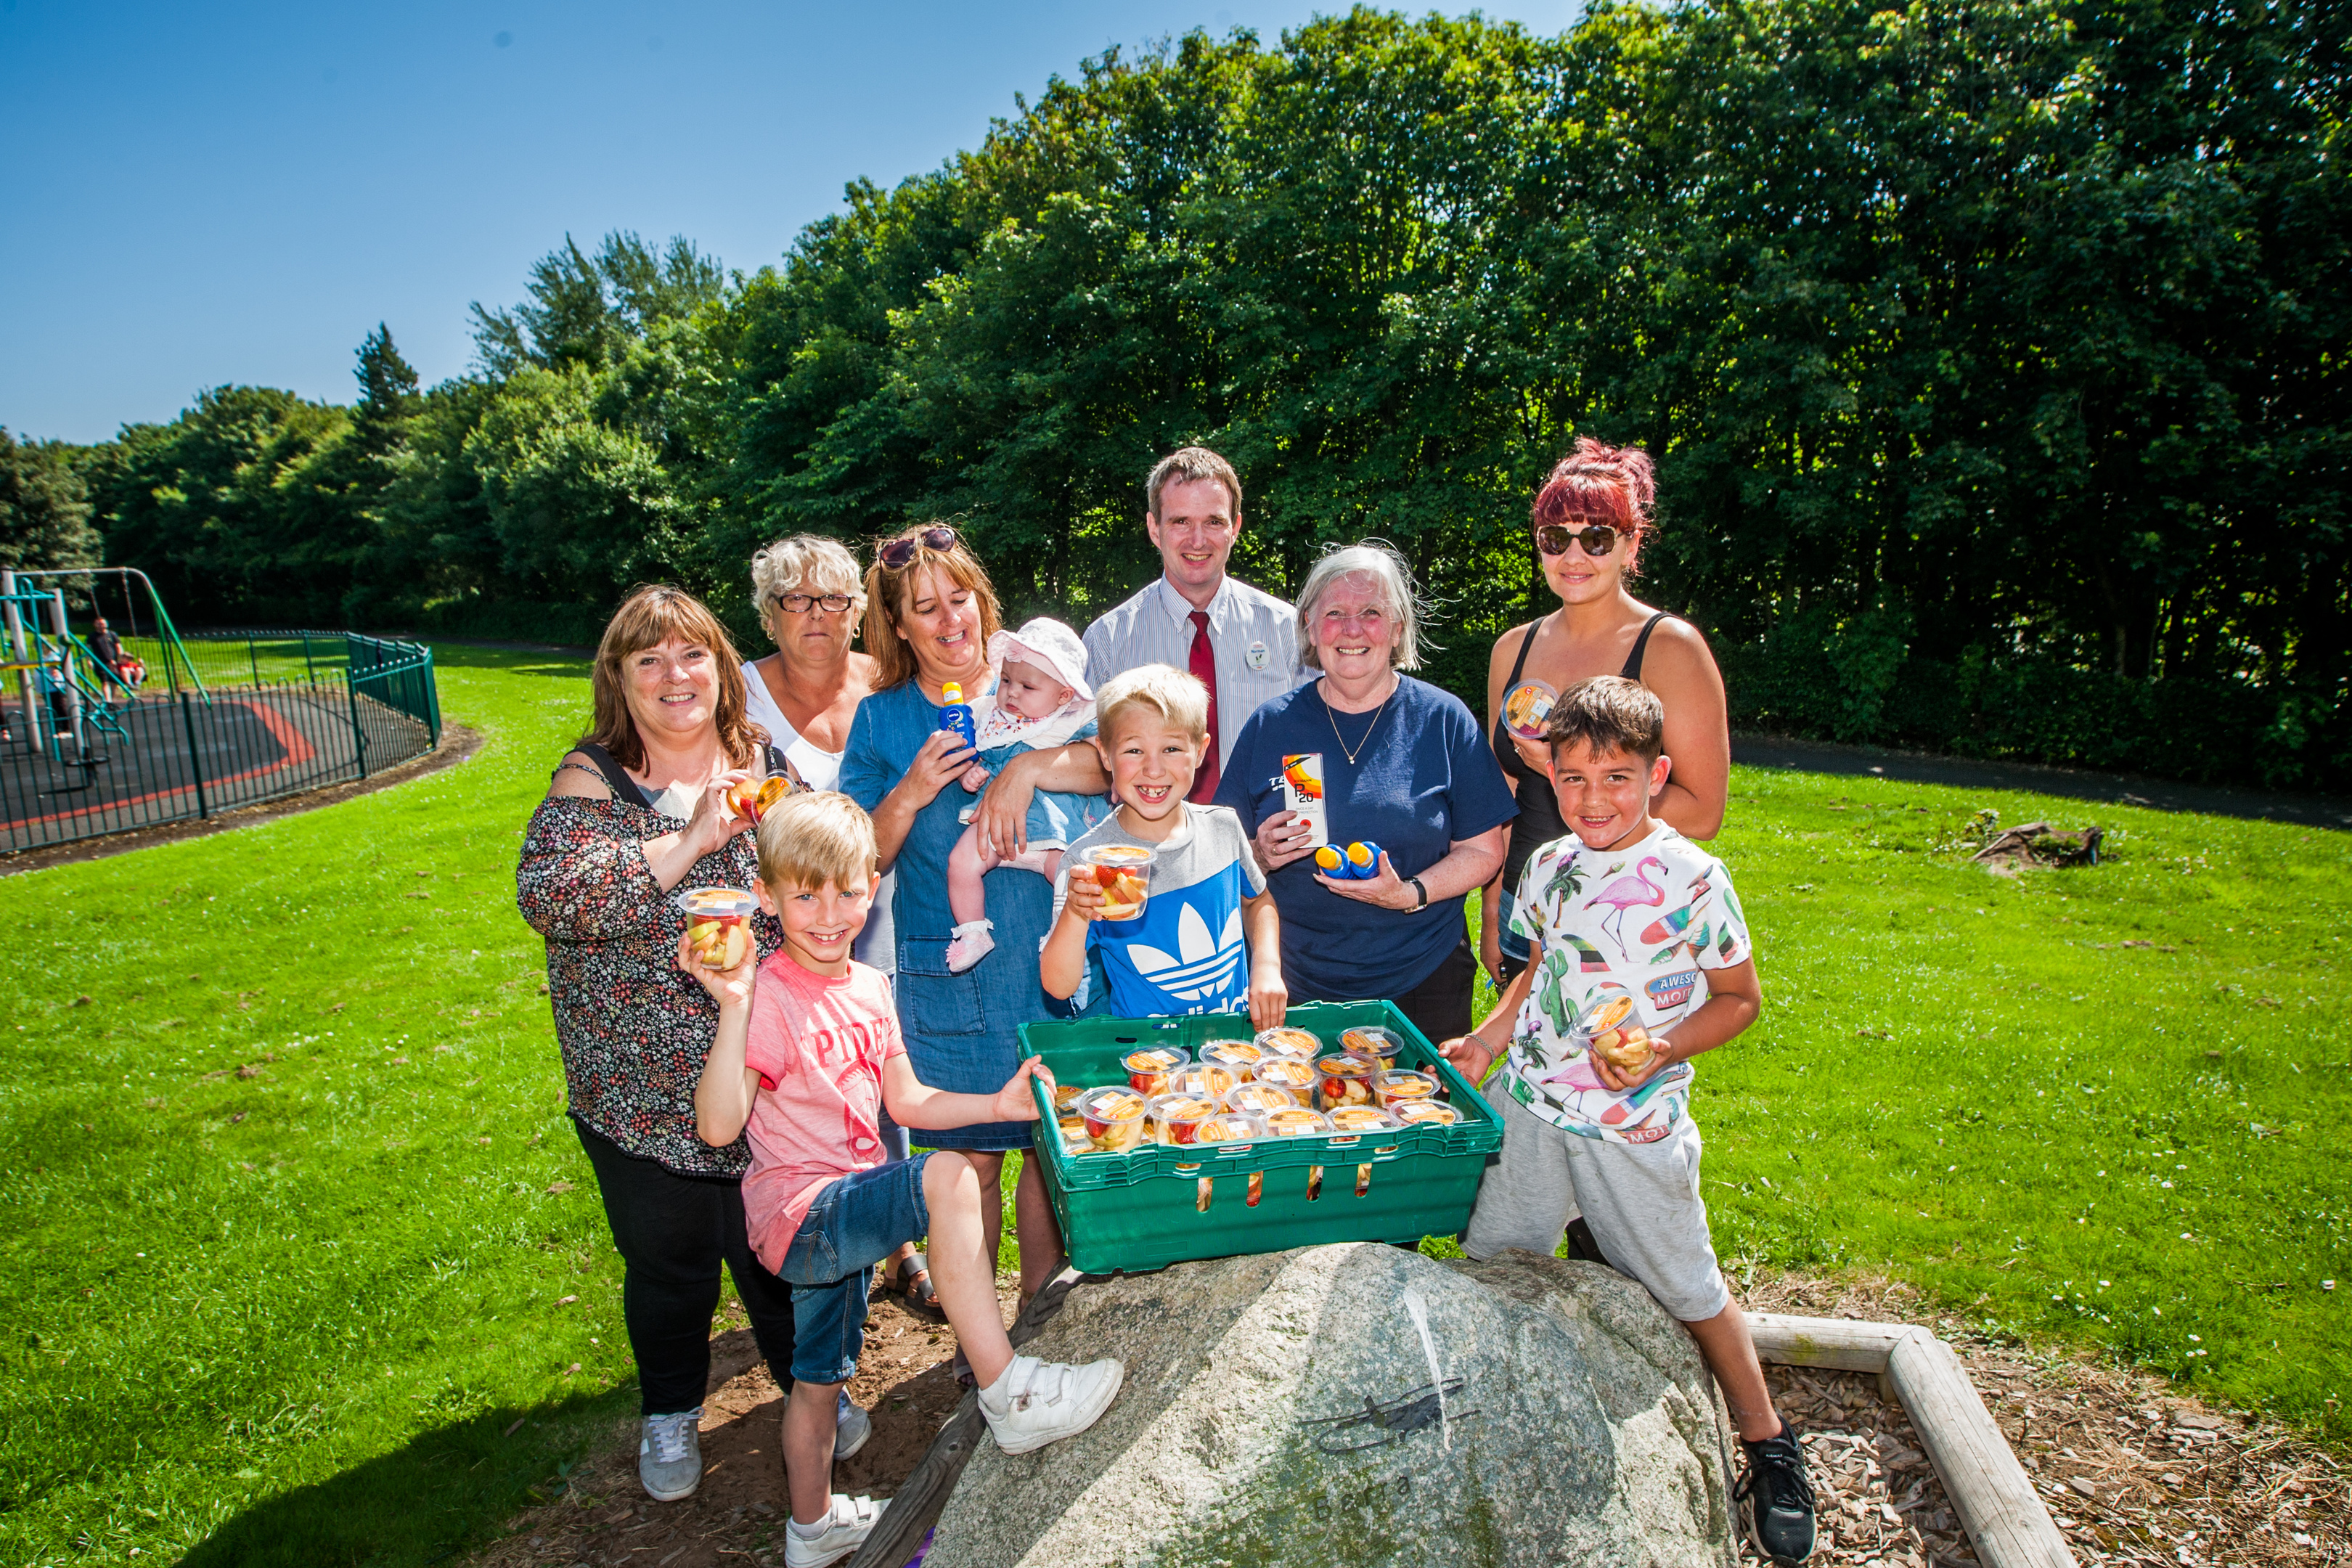 Ruby Young and Norman Smith (Tesco Kingsway, centre) alongside community members. Mill O Mains Playpark, Dundee.